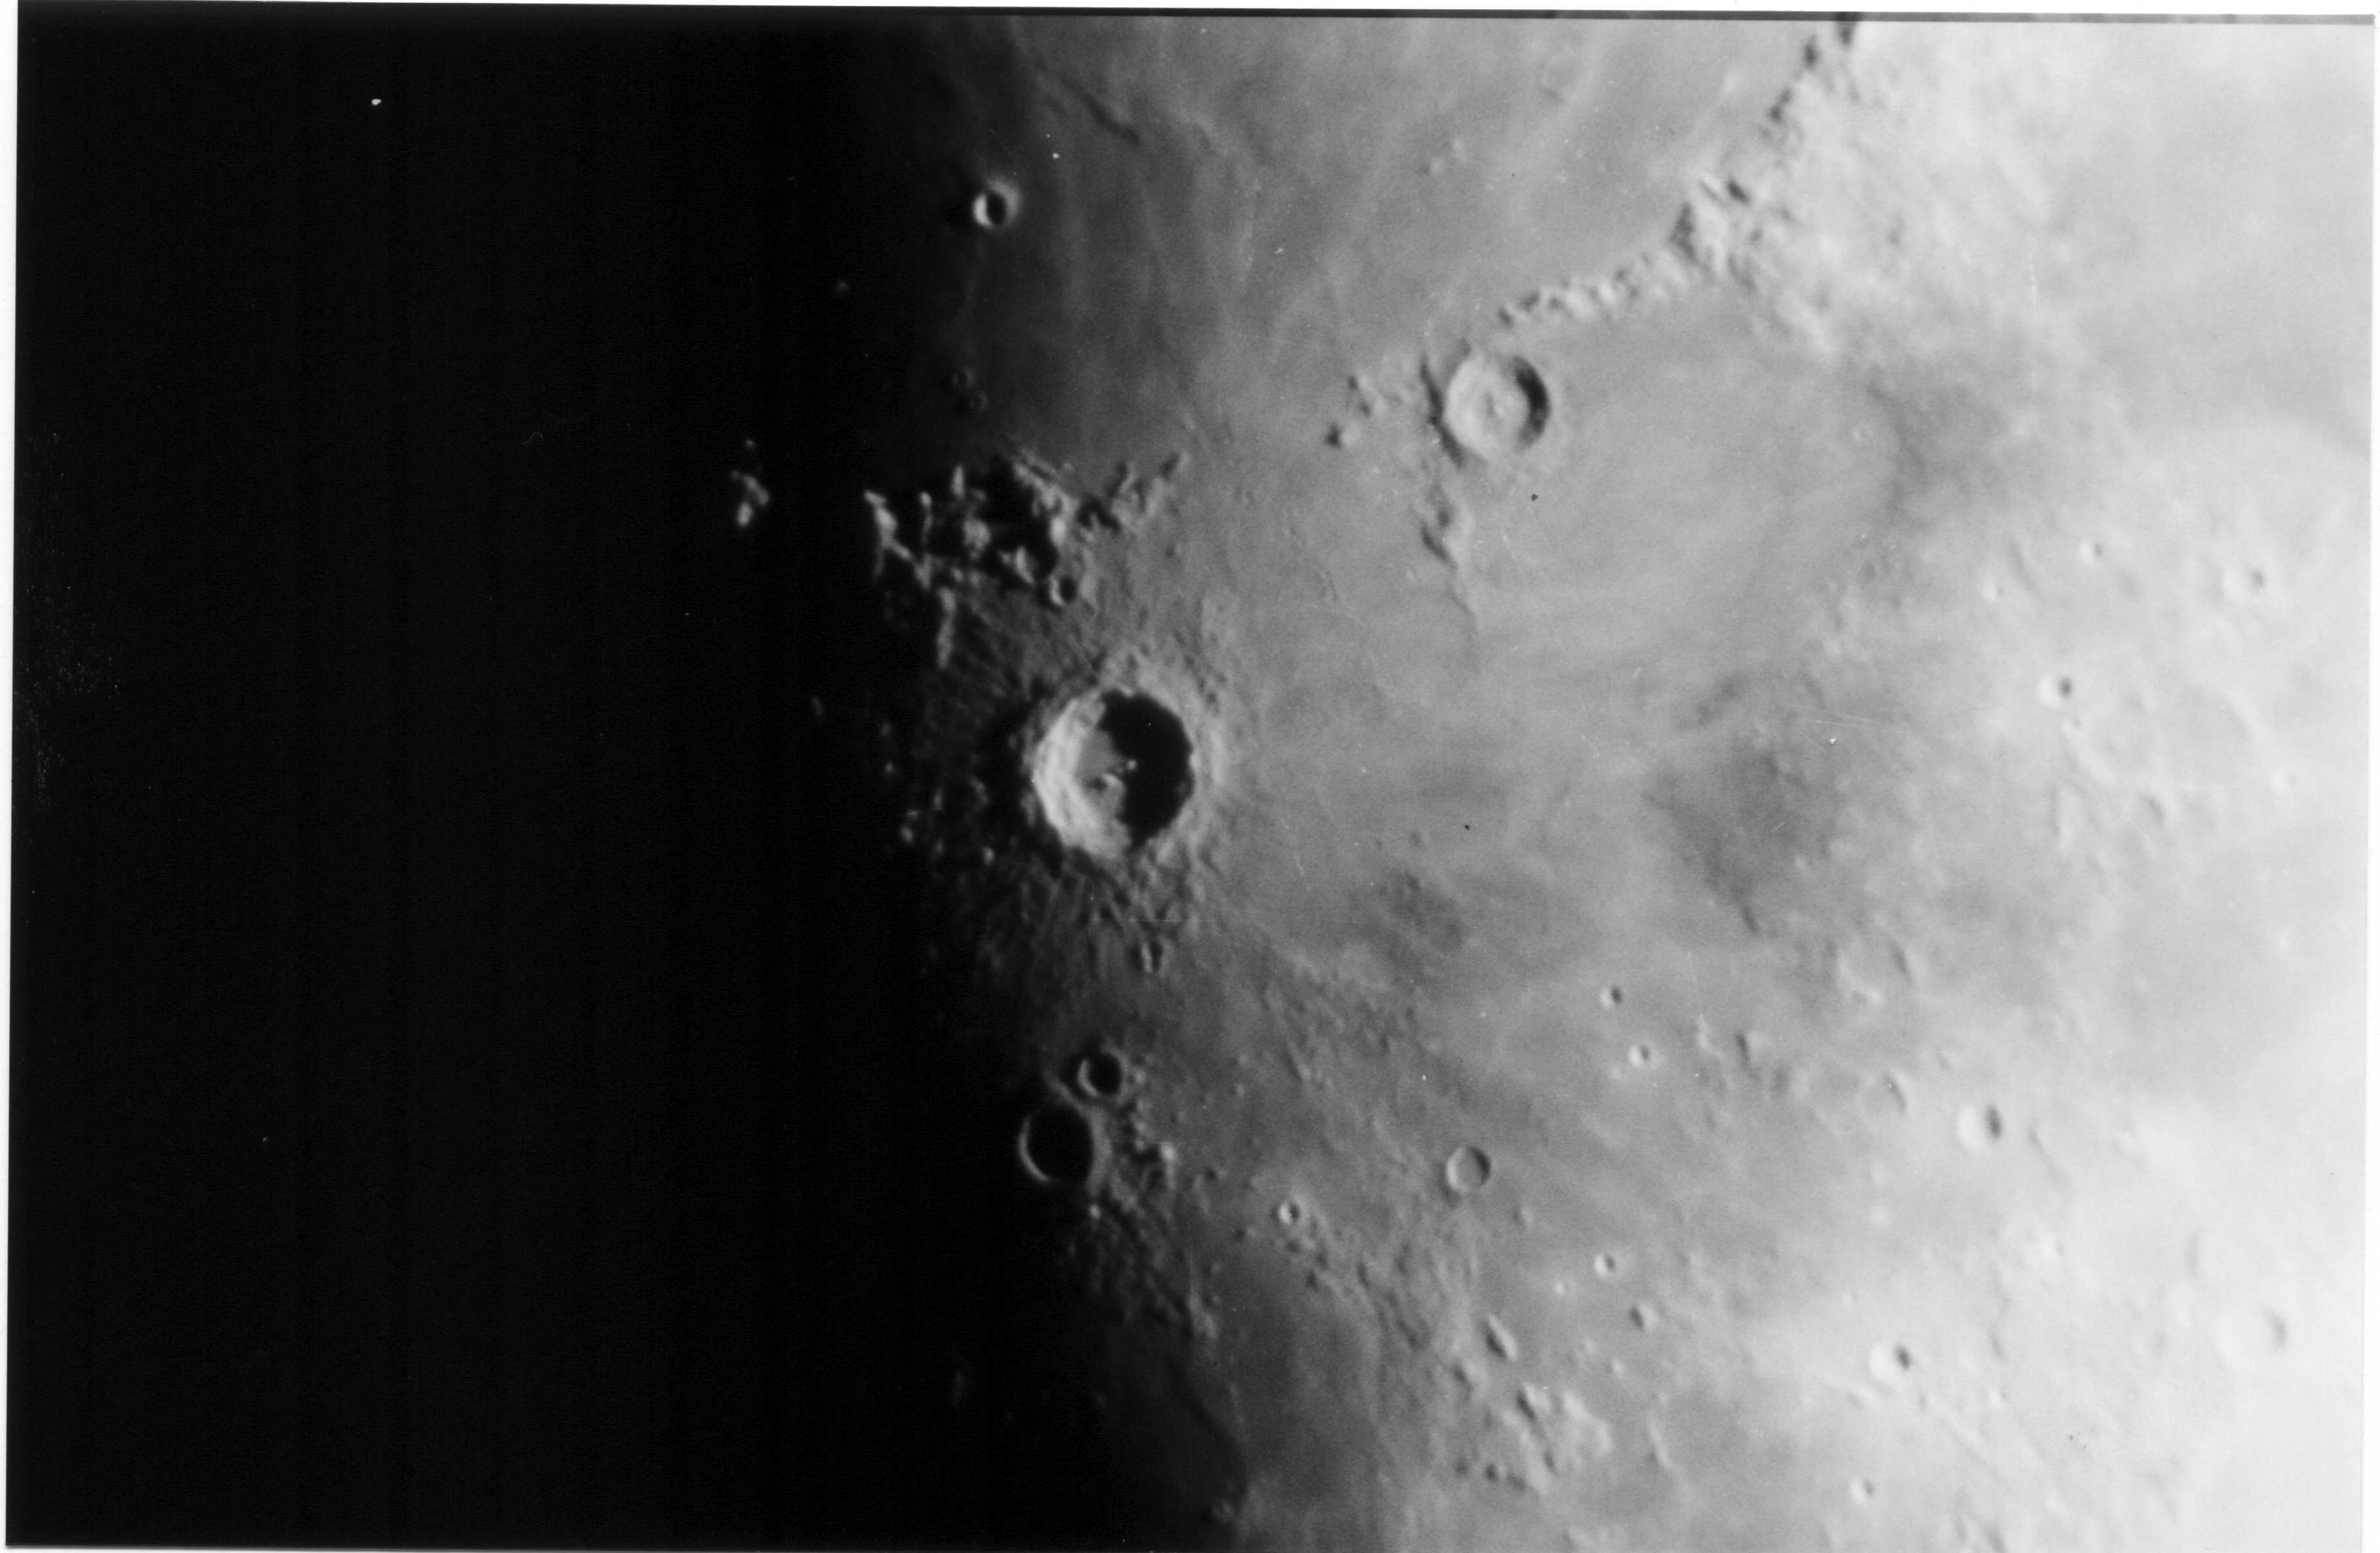 The Crater Copernicus